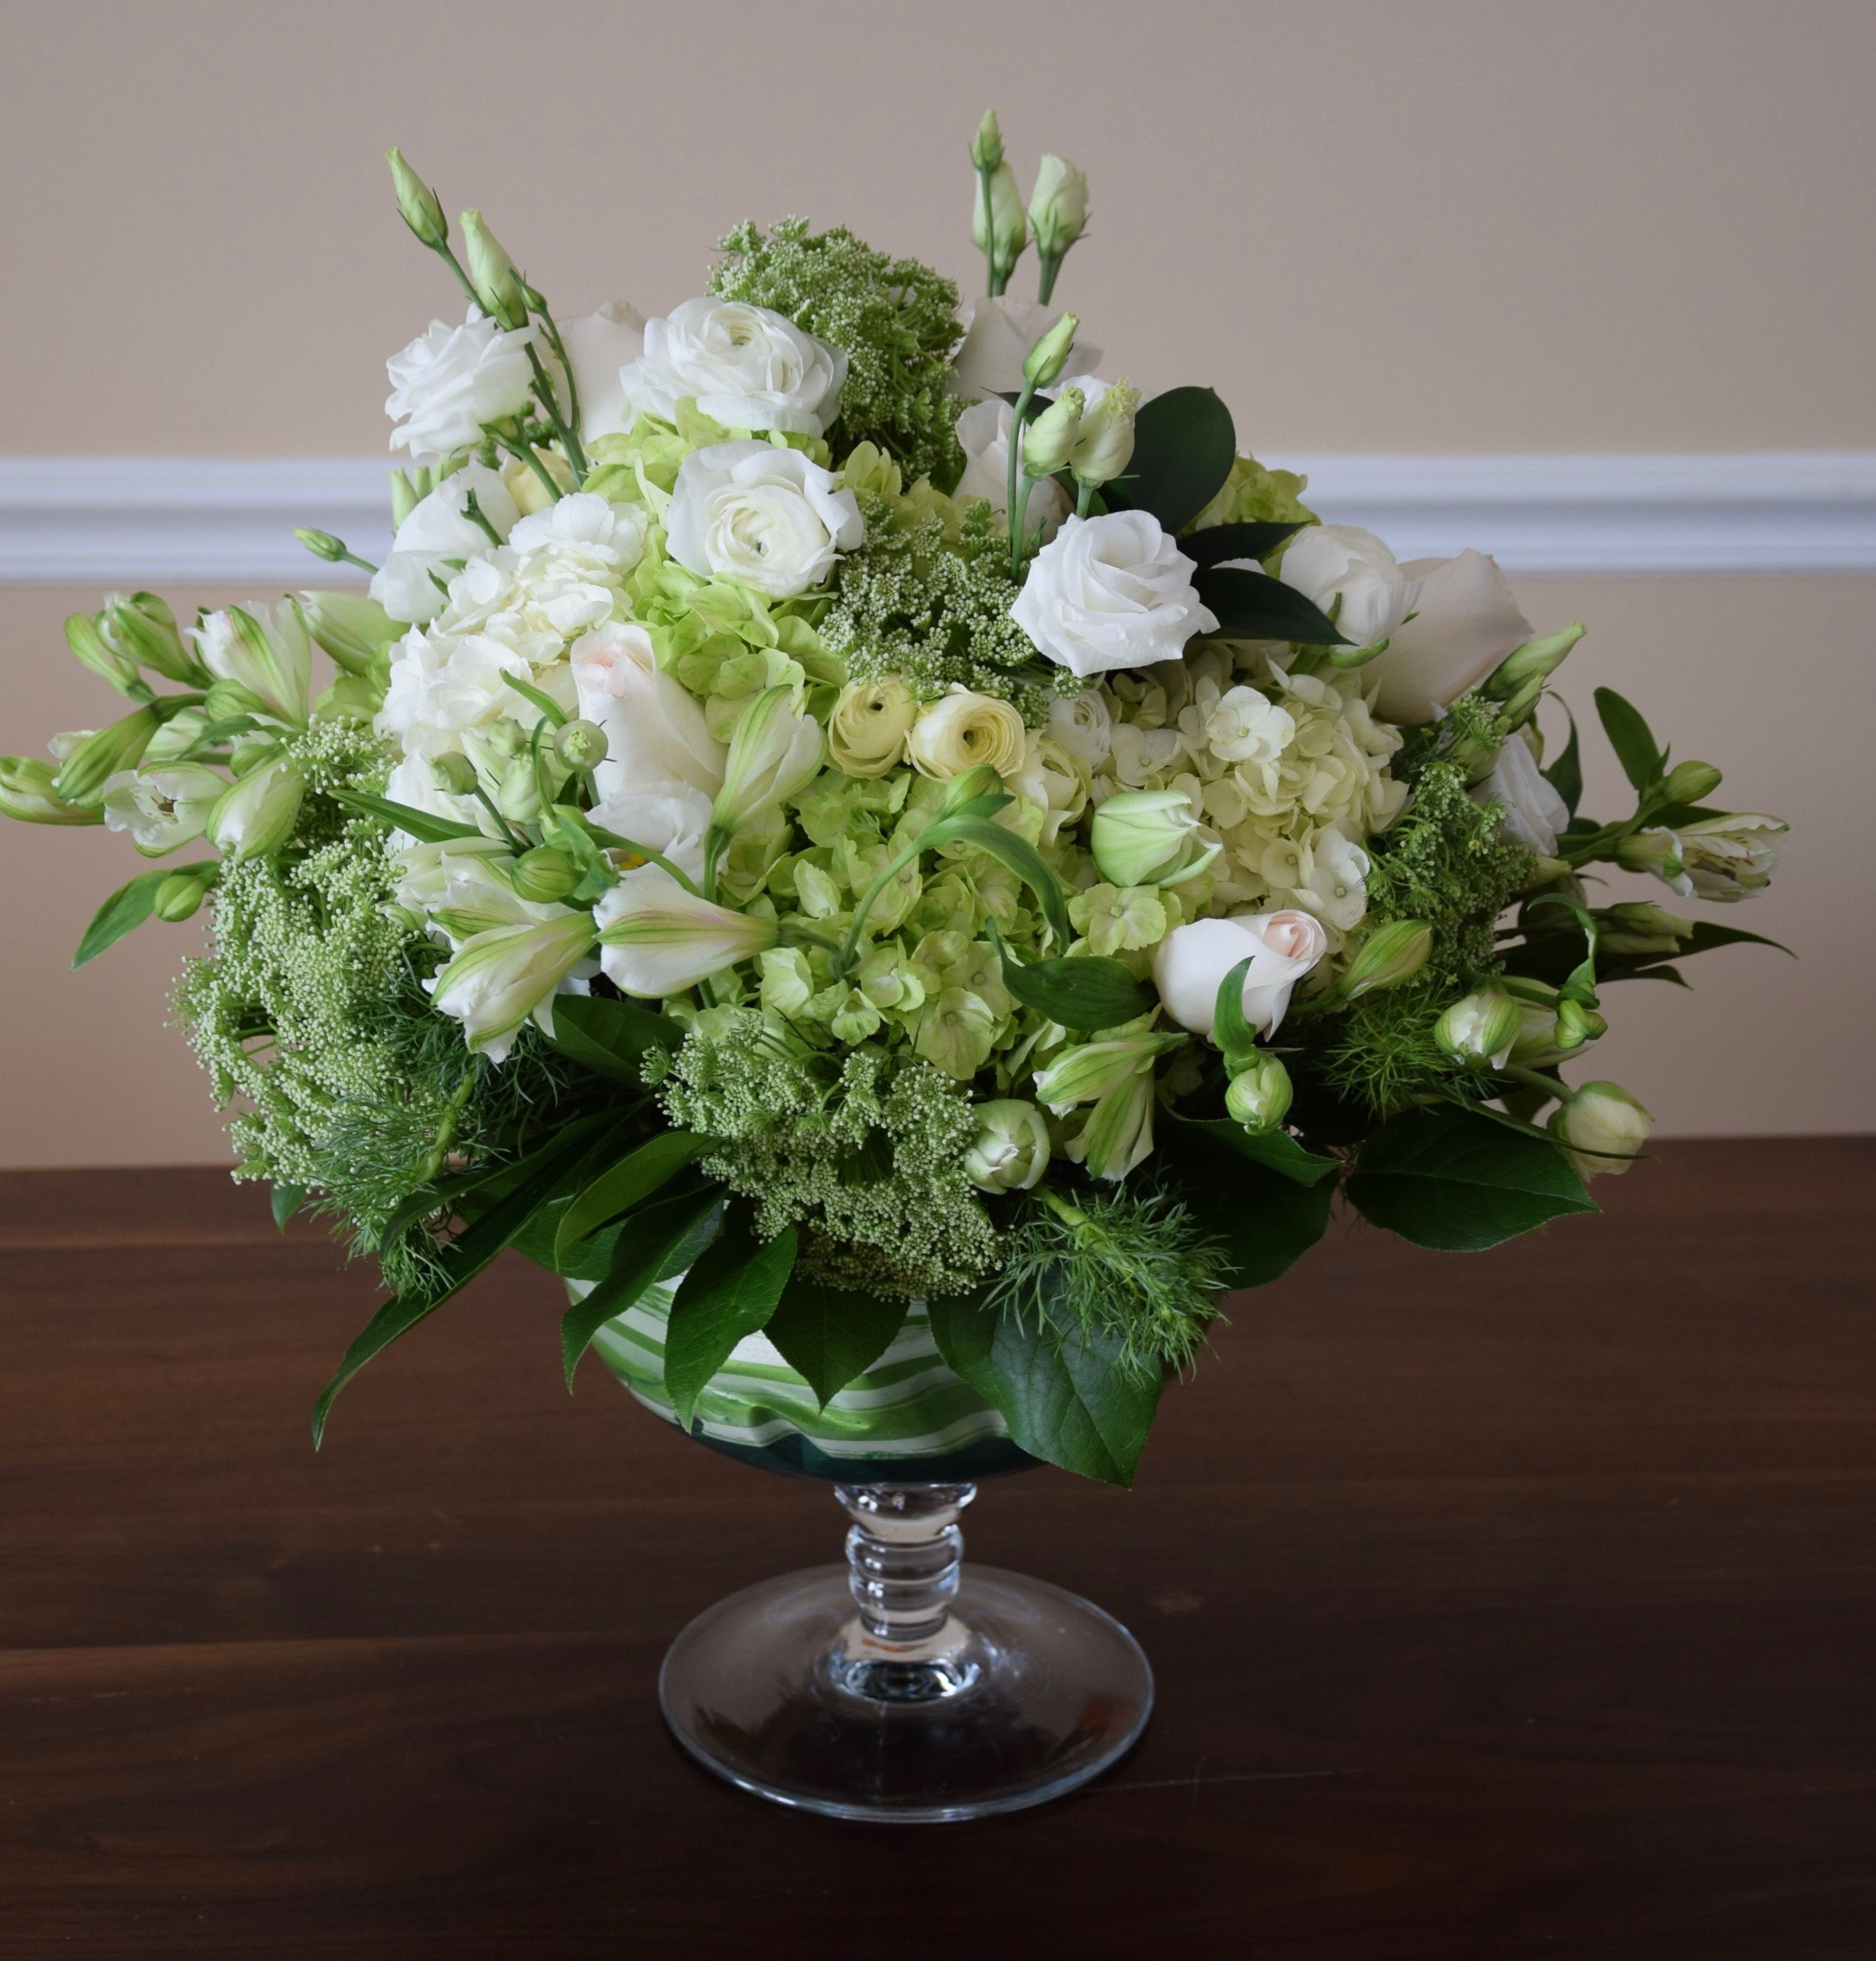 Large table centerpiece in white and green colors as a